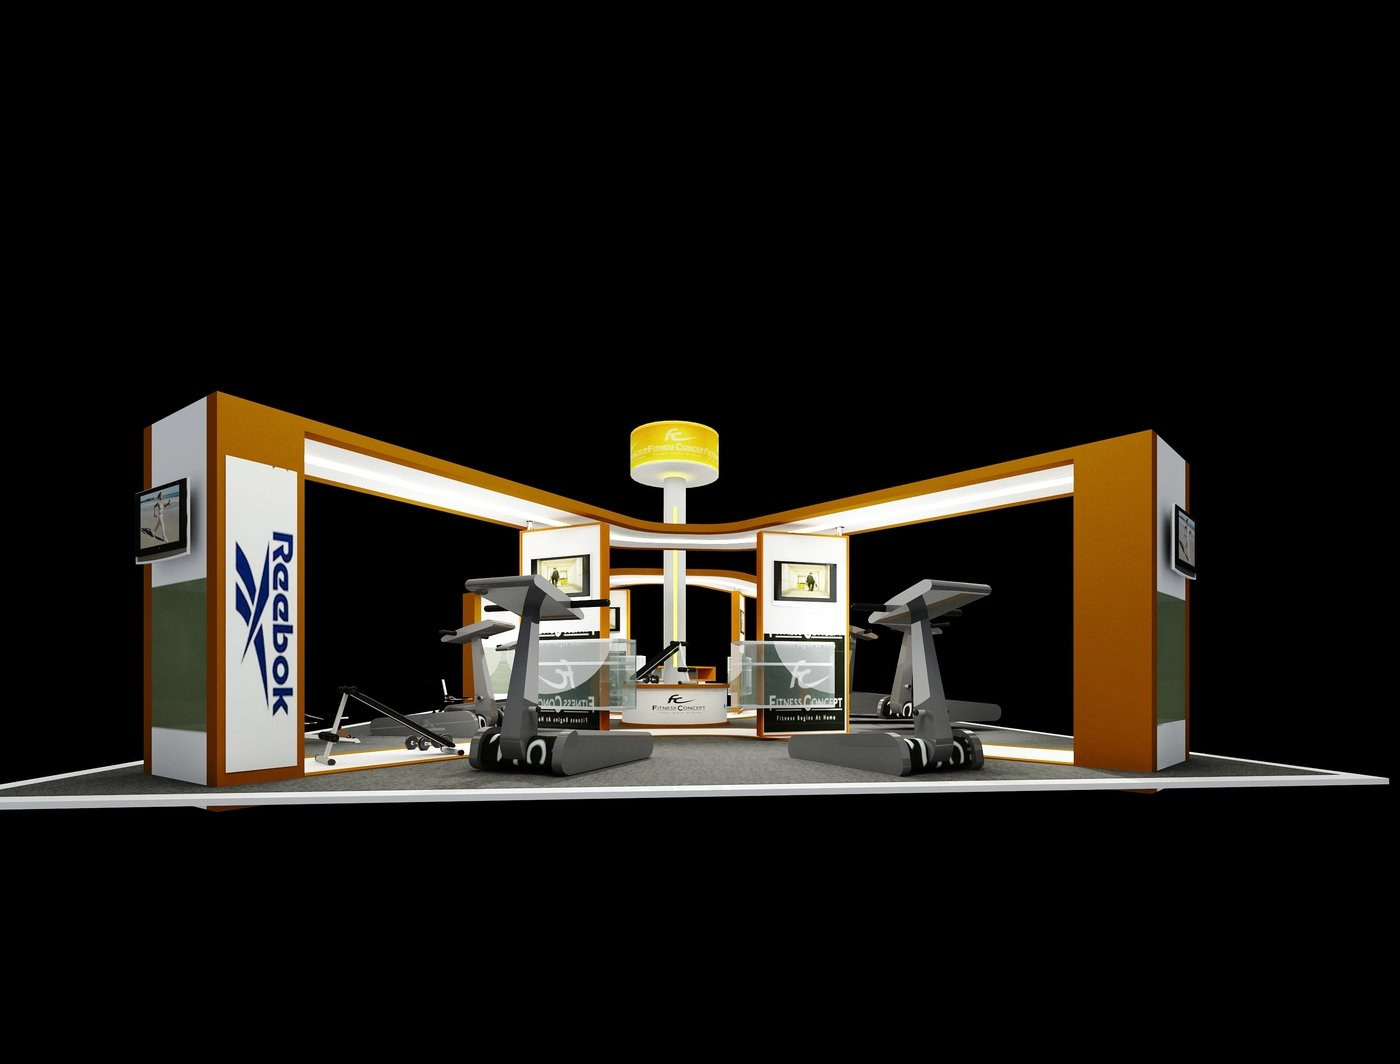 Exhibition Booth Concept : Exhibition booth design by lawrence parir at coroflot